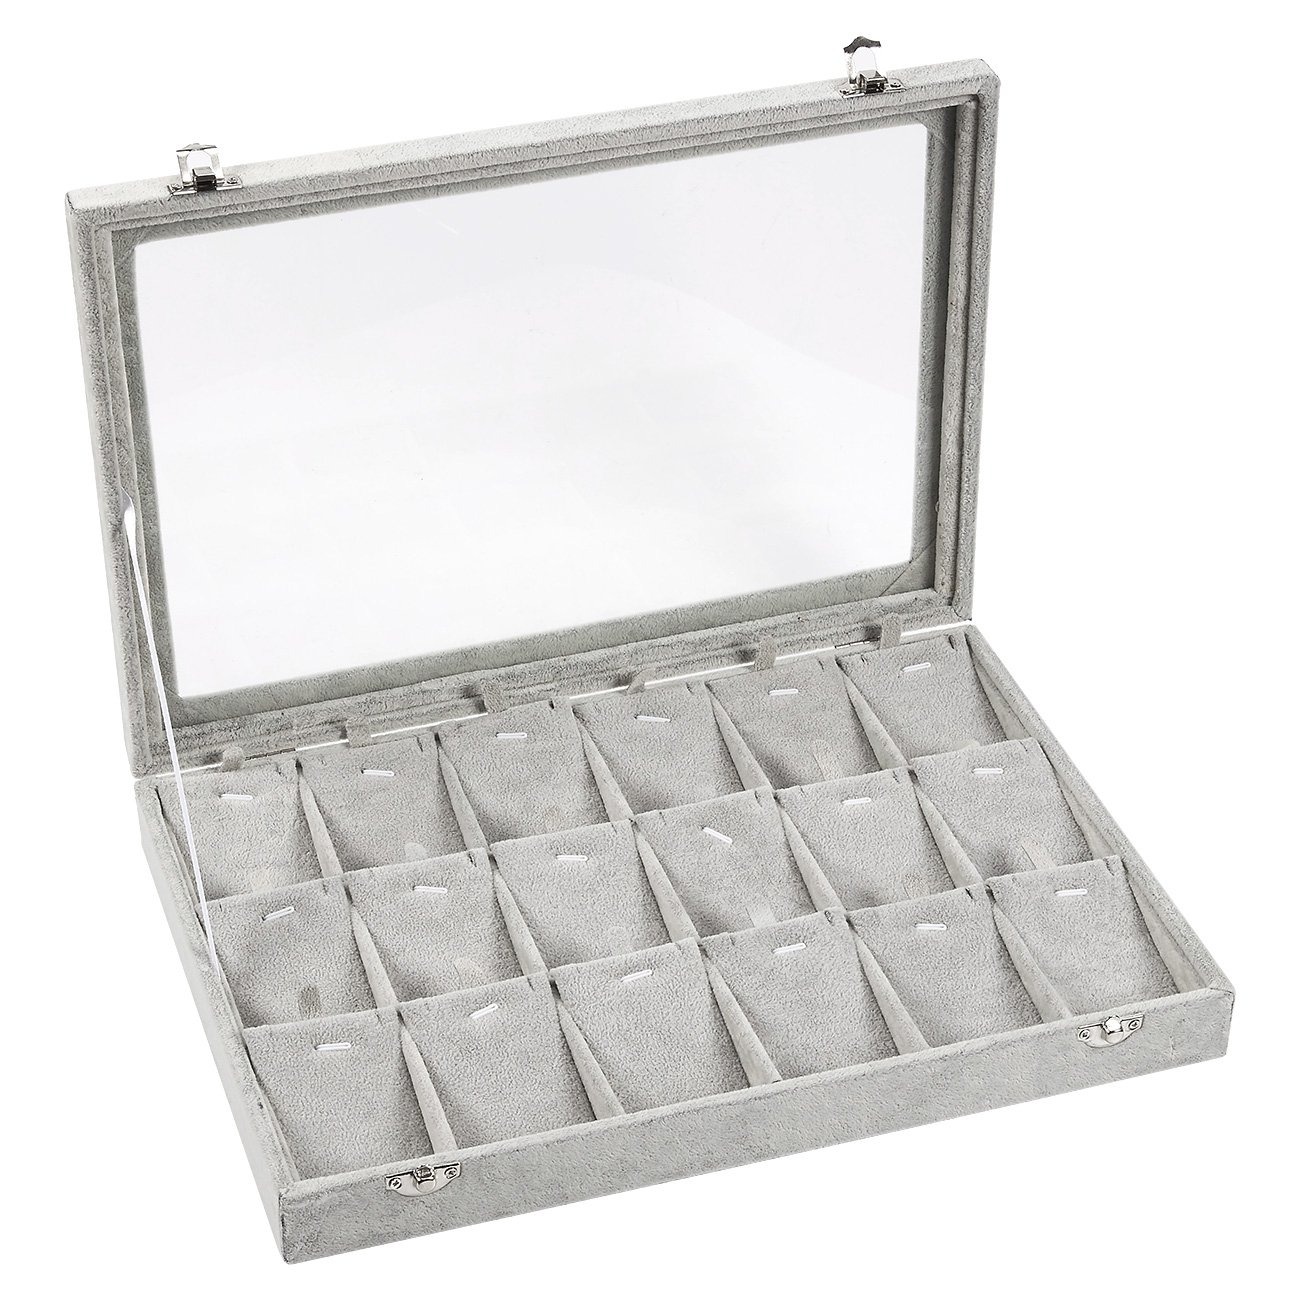 Jewelry Box – Pendant Display Case, Jewelry Holder, Storage Box for Necklaces, Pendants, Earrings with Transparent Glass Top, 18 Removable Pads, Grey - 13.75 x 2 x 9.5 Inches